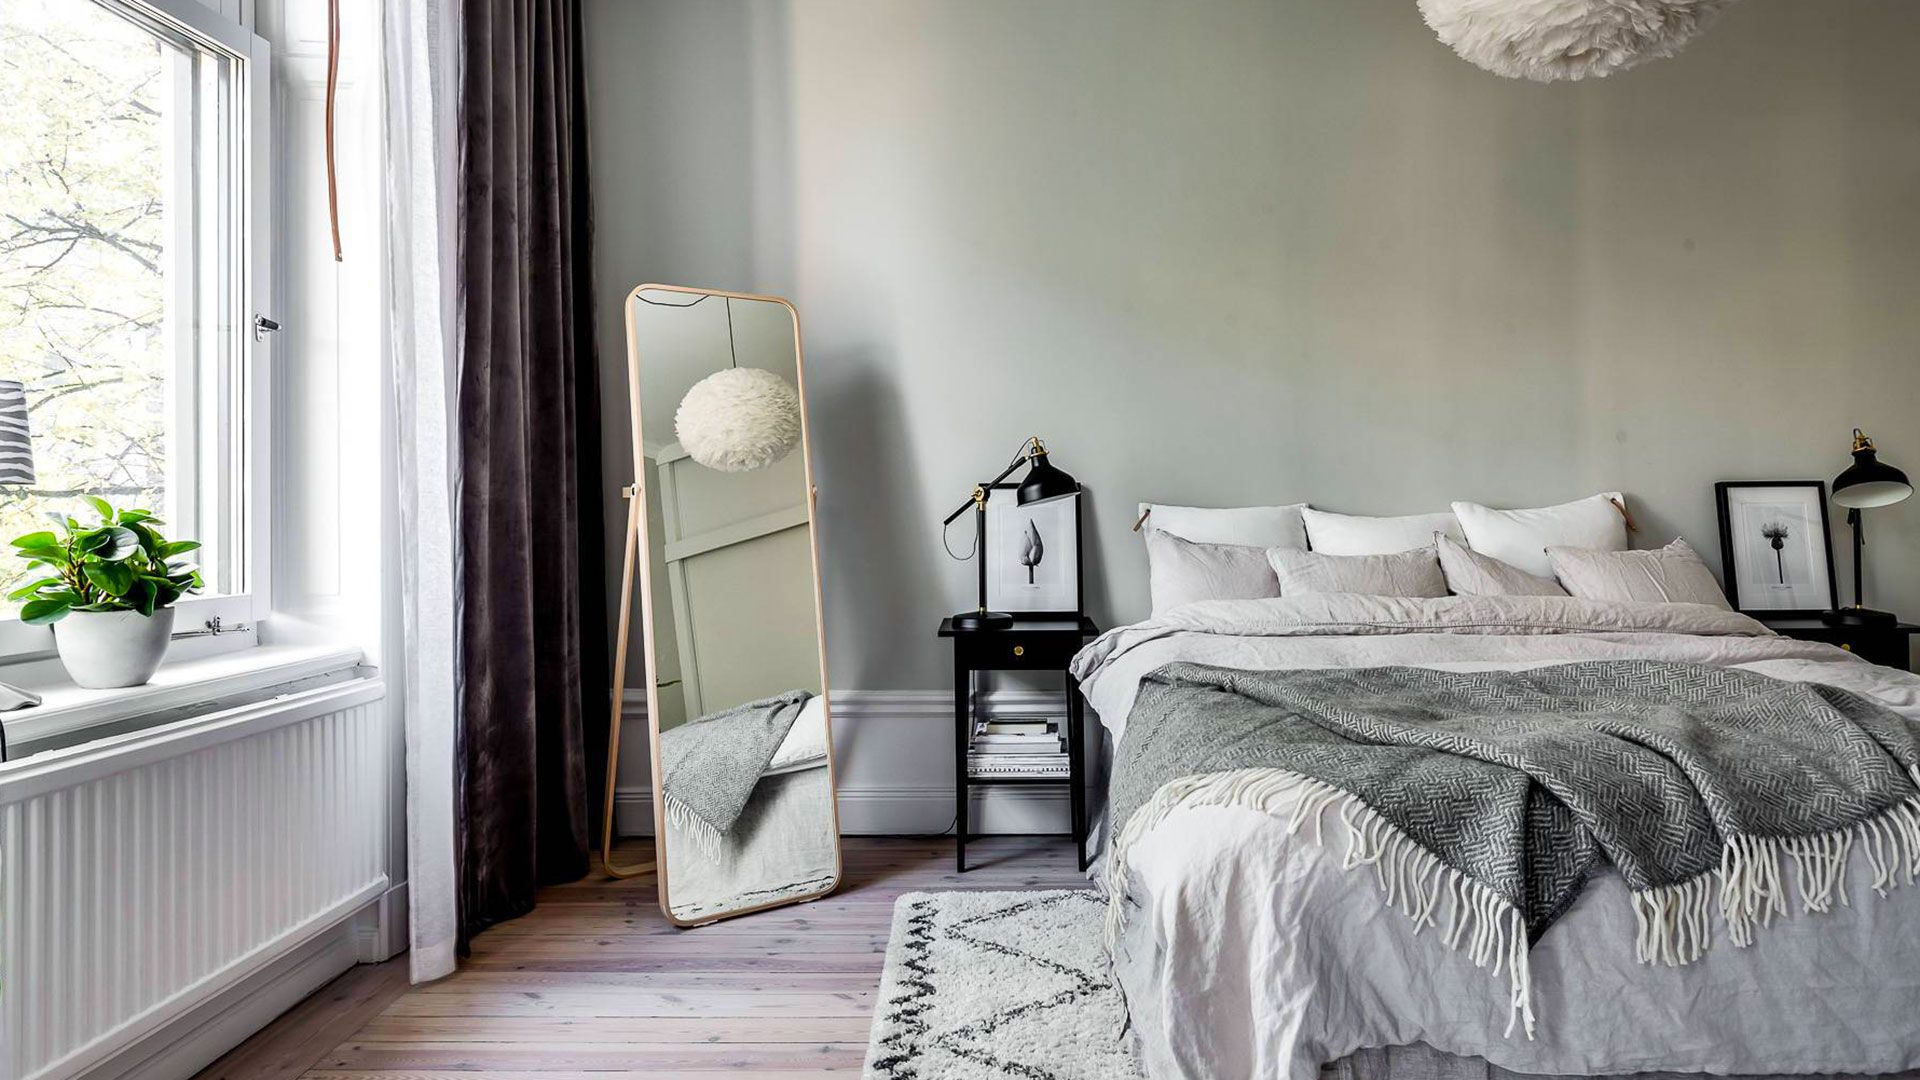 22 Ways to Work Sage Green Into Your Home Decor ASAP images